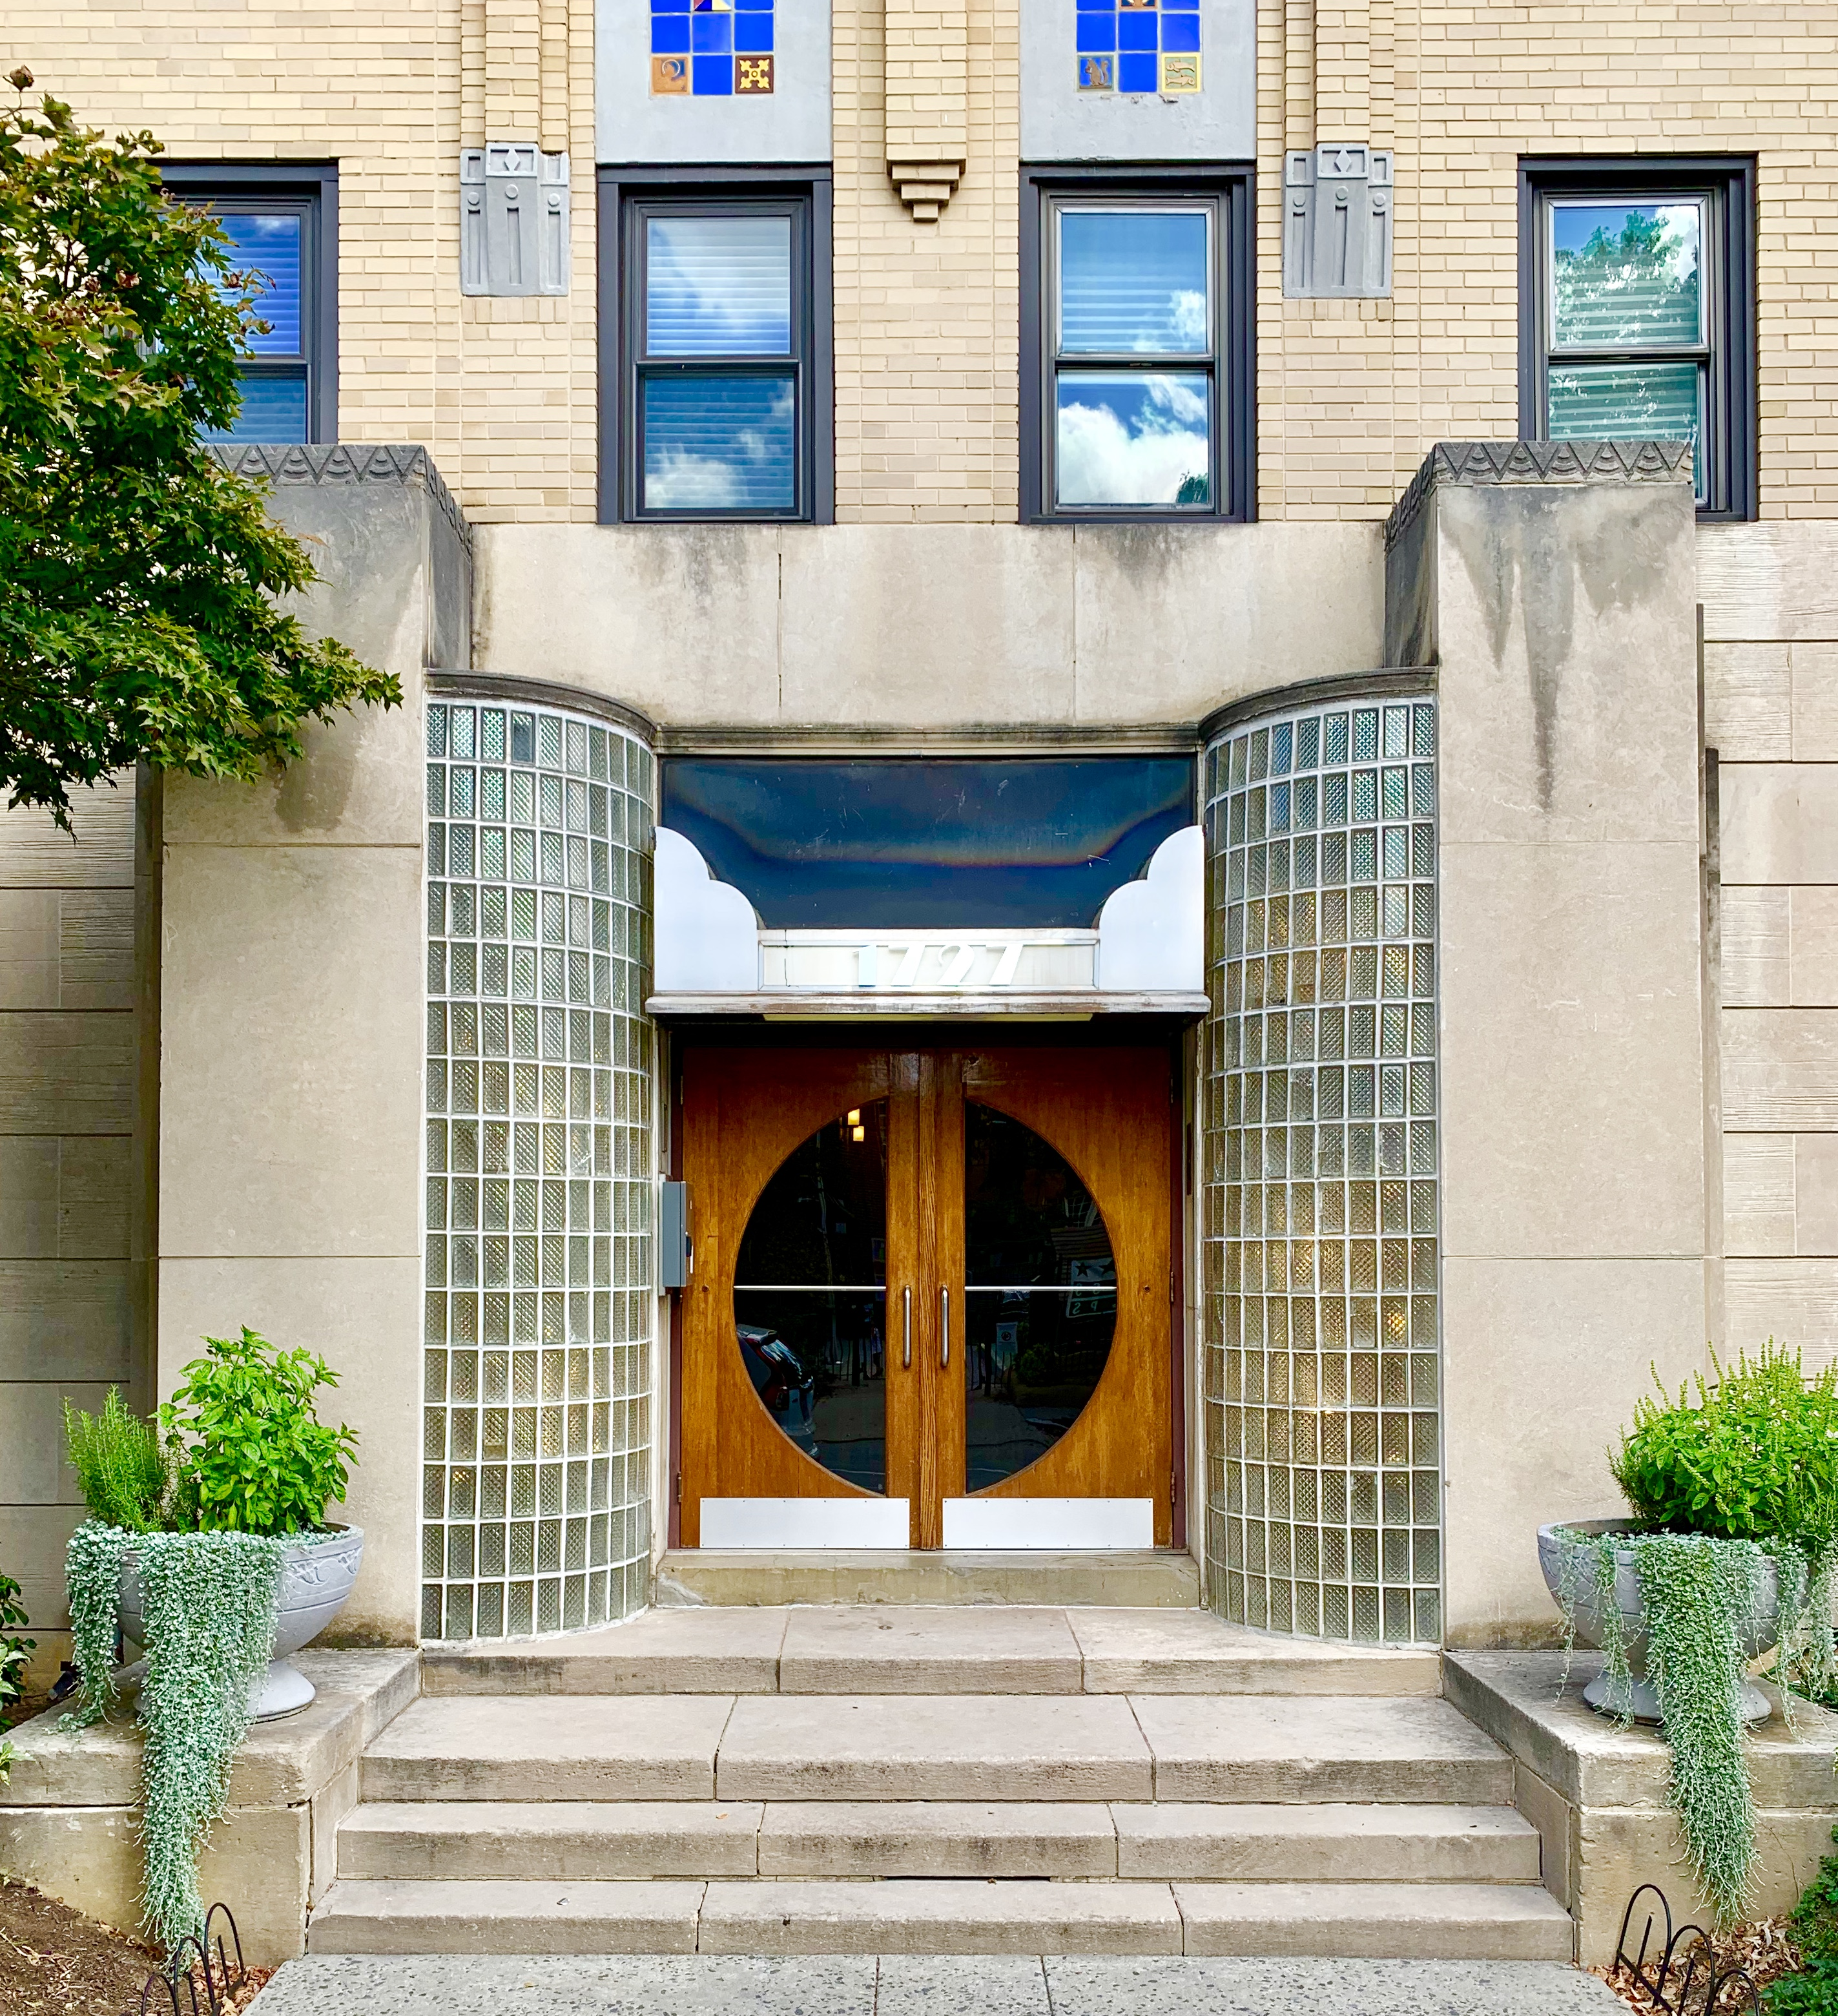 Art Deco Condos For Sale in Washington, DC. The Pierre in Dupont Circle. Artyom Shmatko Luxury Realtor